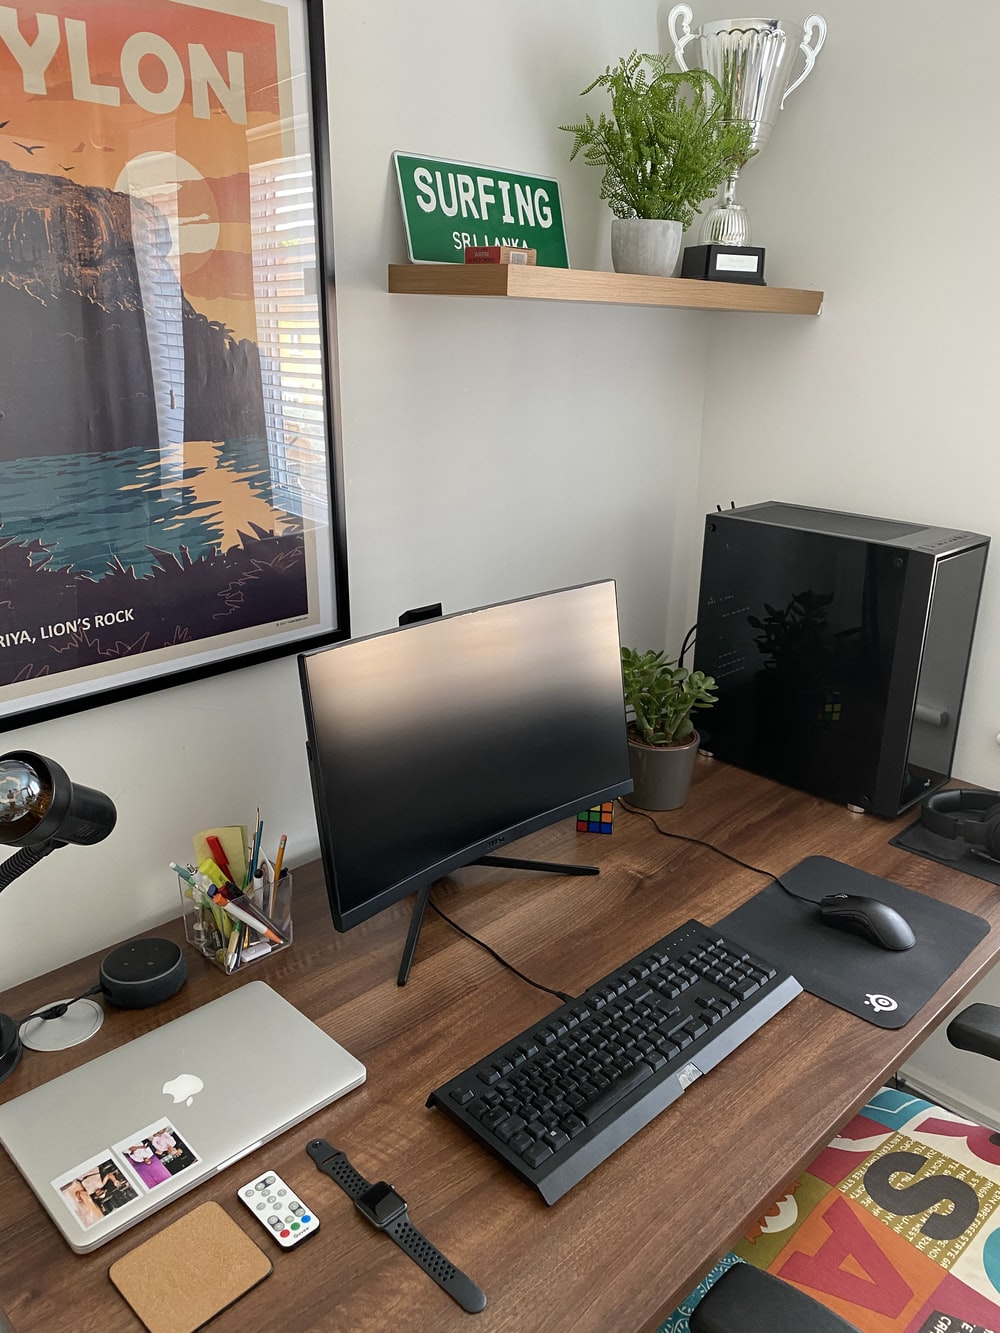 350 Work Desk Pictures Hd Download Free Images On Unsplash